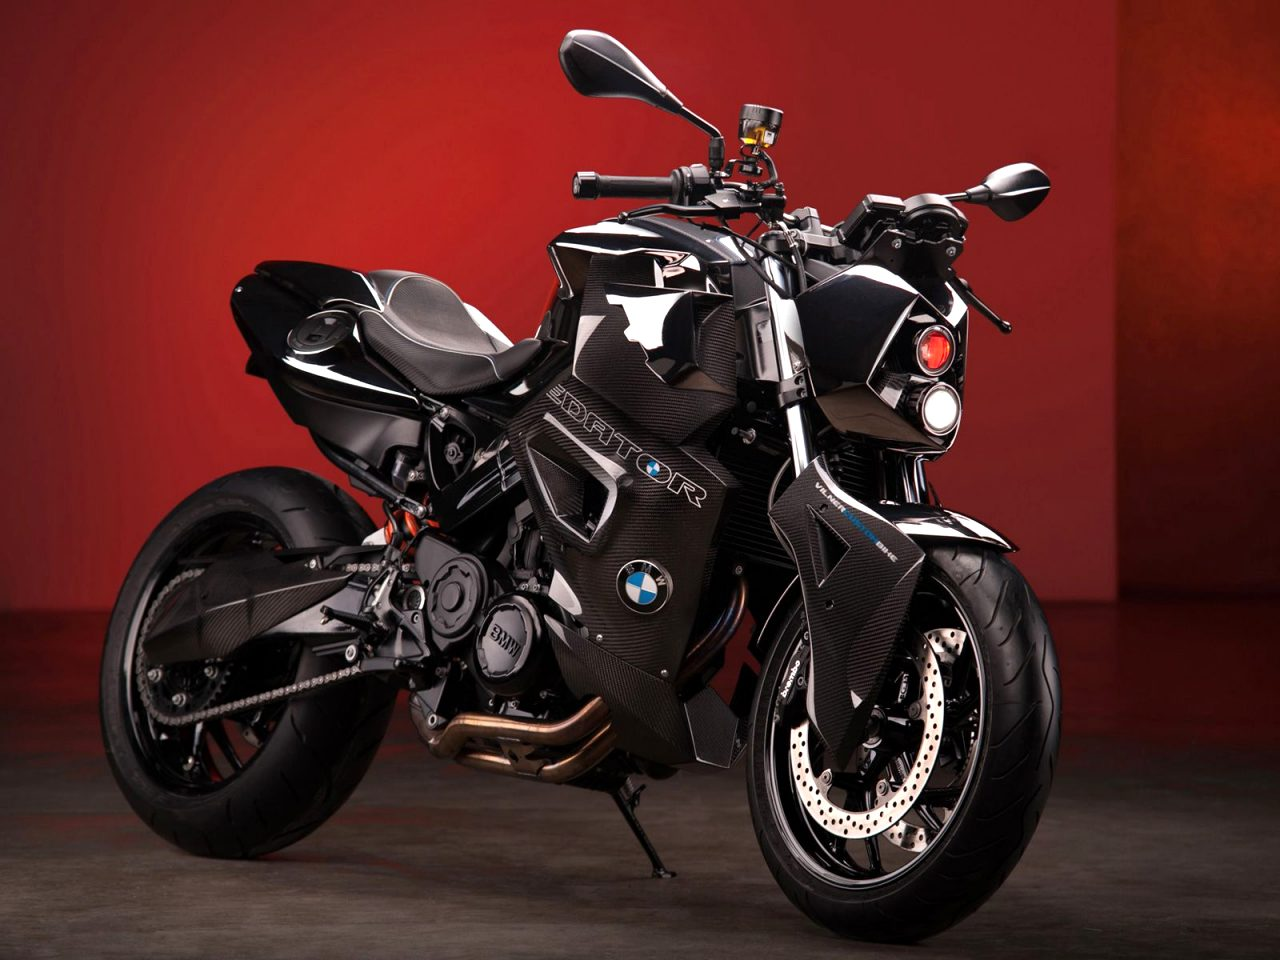 2021 BMW f800r Review